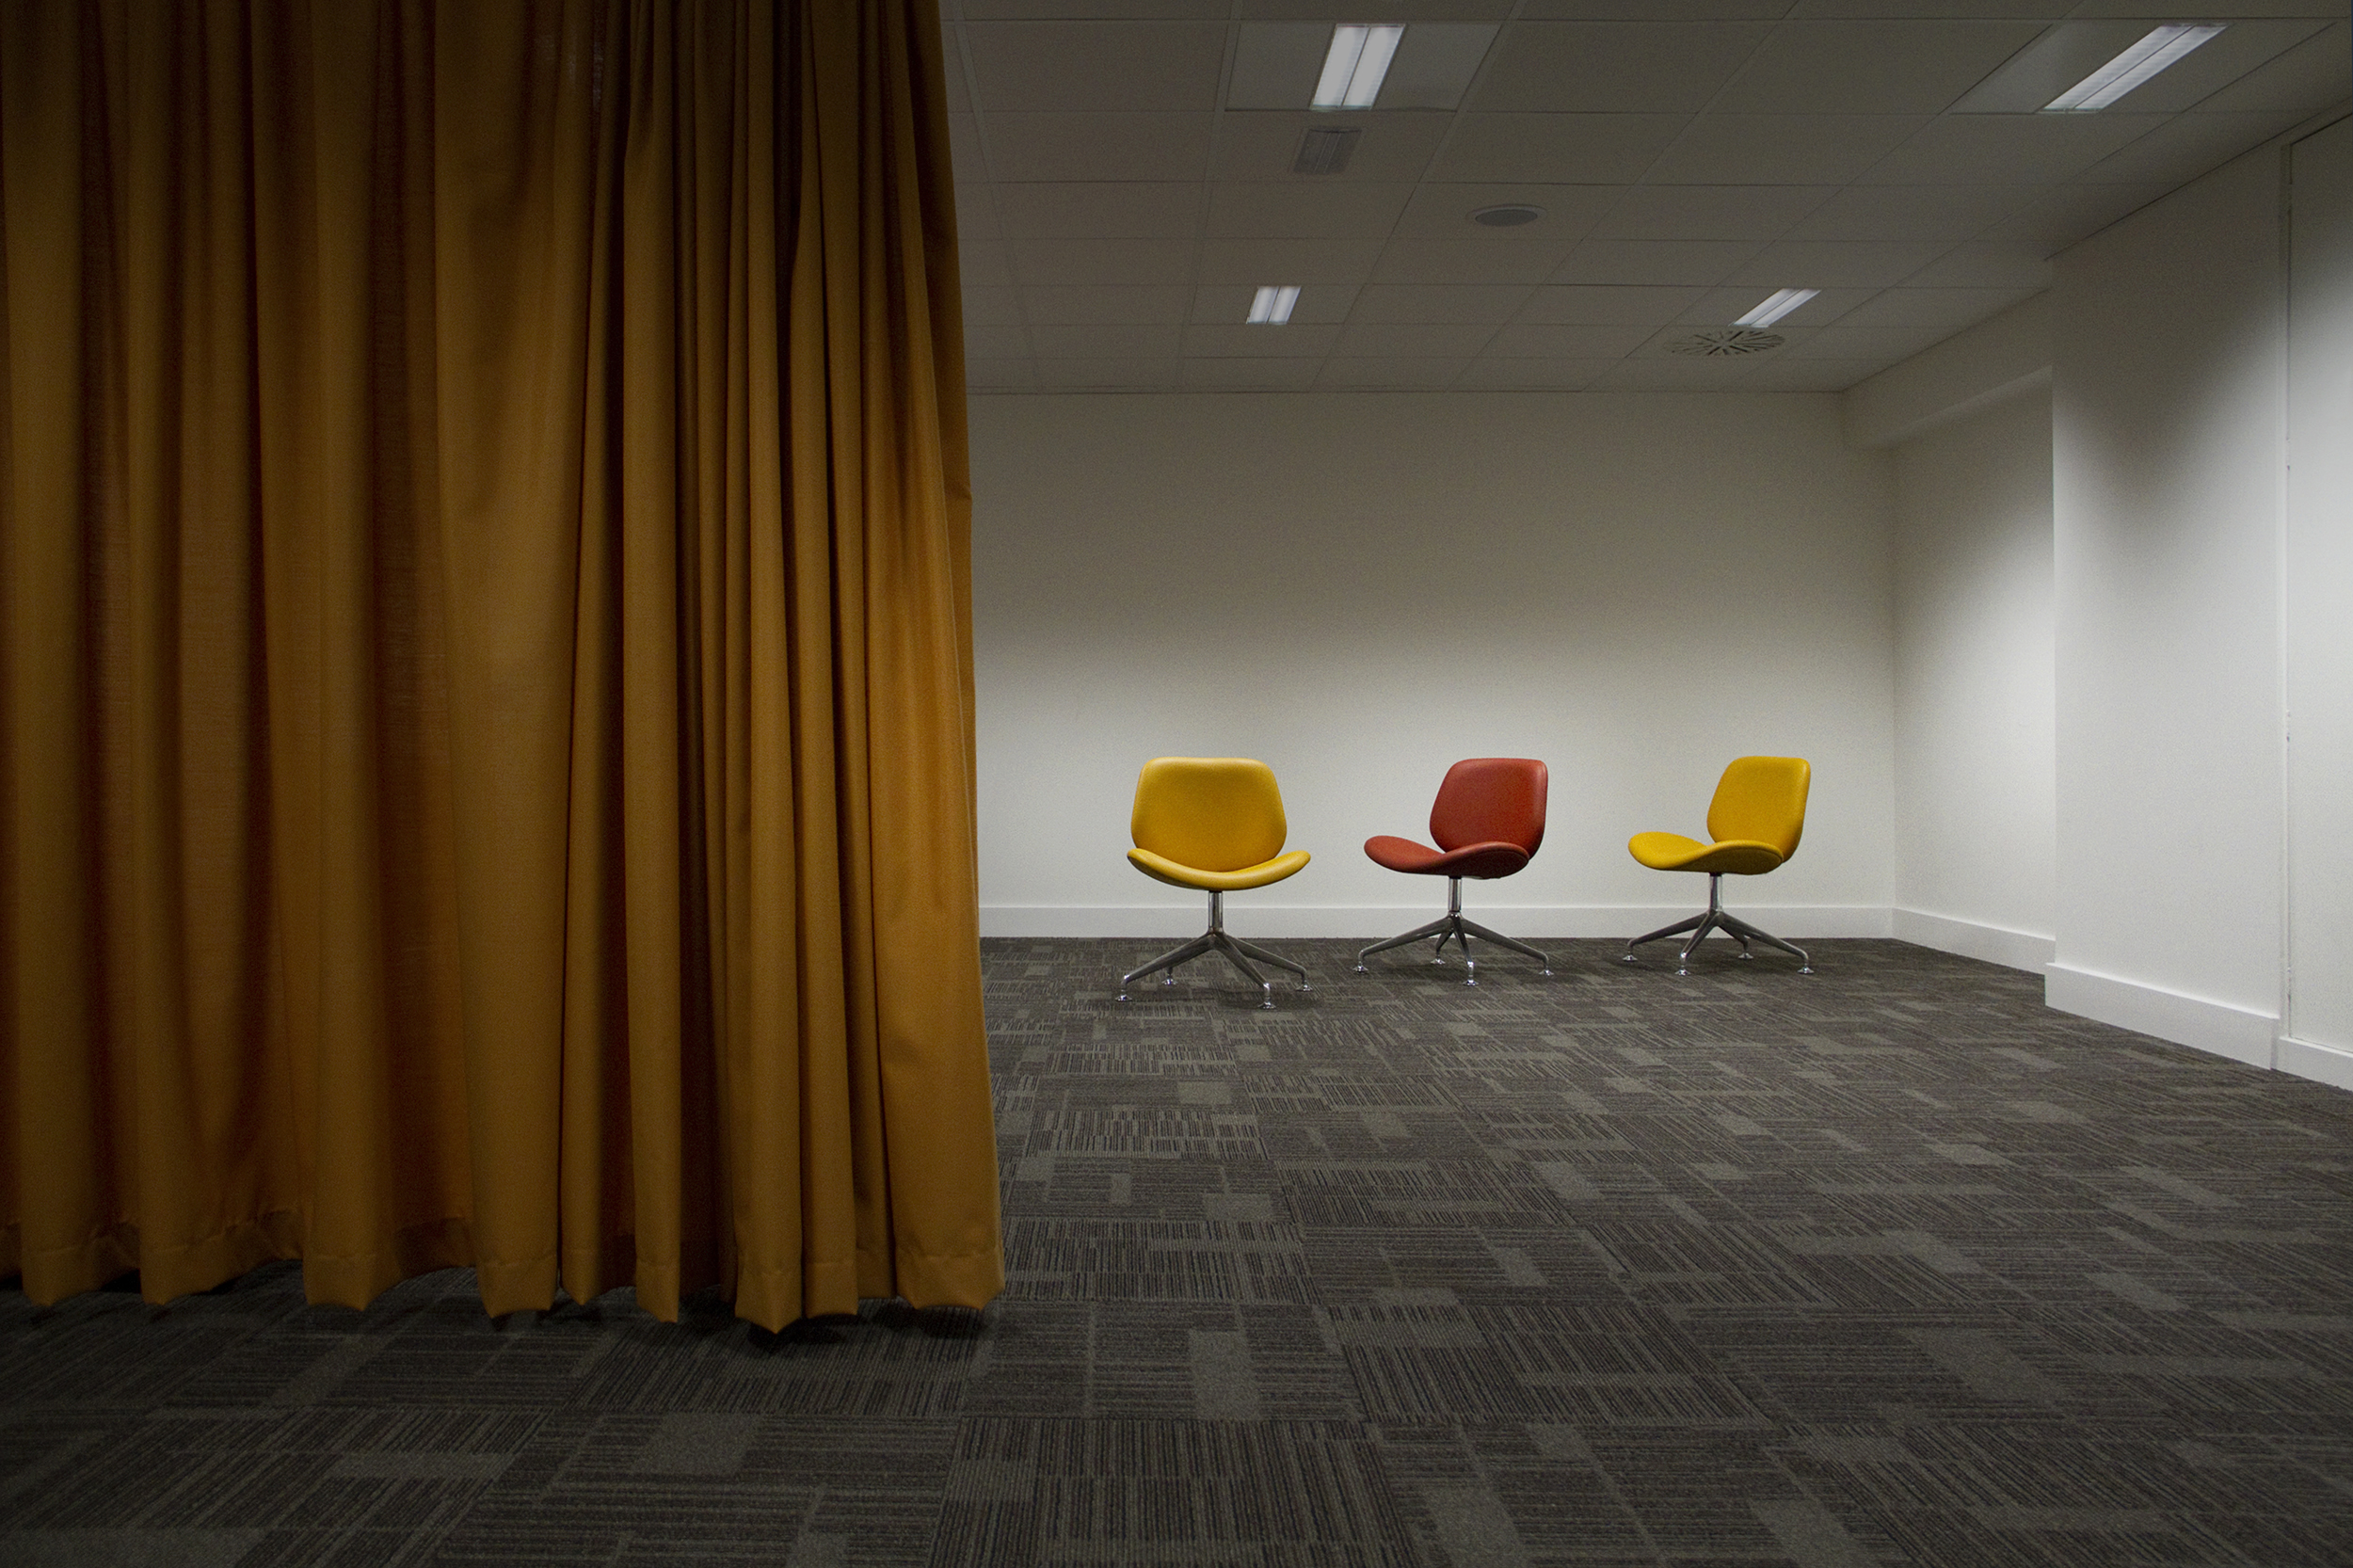 Heathrow Prayer Room, London 2011 - (Lobbies Project)